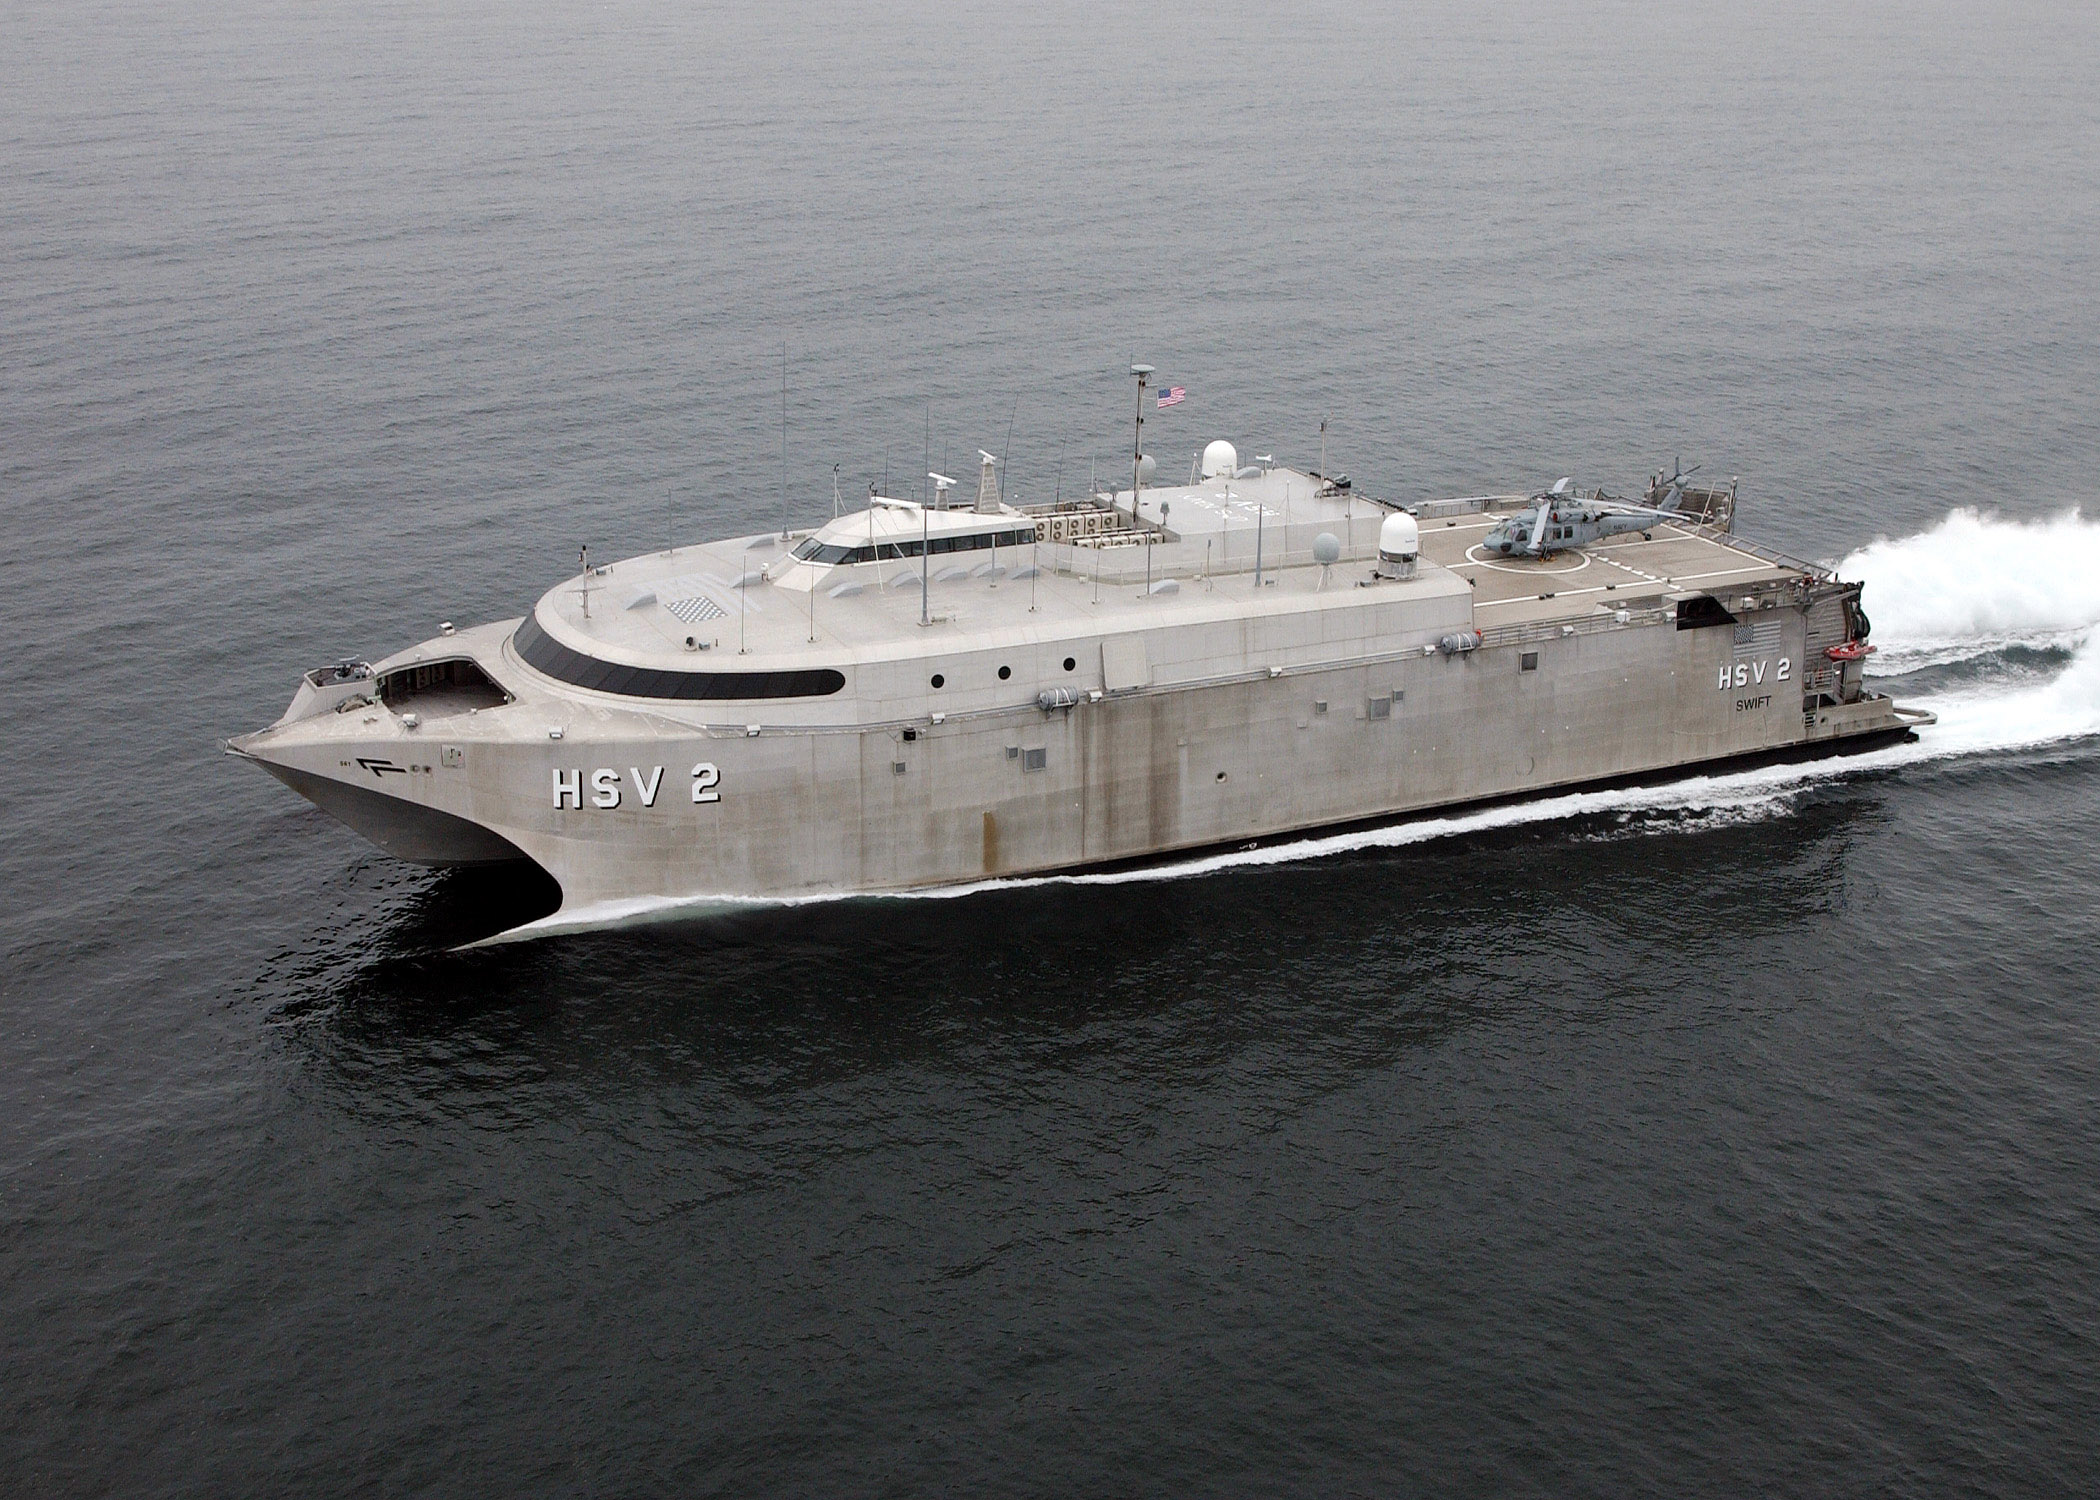 https://upload.wikimedia.org/wikipedia/commons/2/2a/US_Navy_040210-N-4374S-002_High_Speed_Vessel_Two_%28HSV_2%29_Swift_glides_through_the_waters_of_the_Atlantic_Ocean.jpg